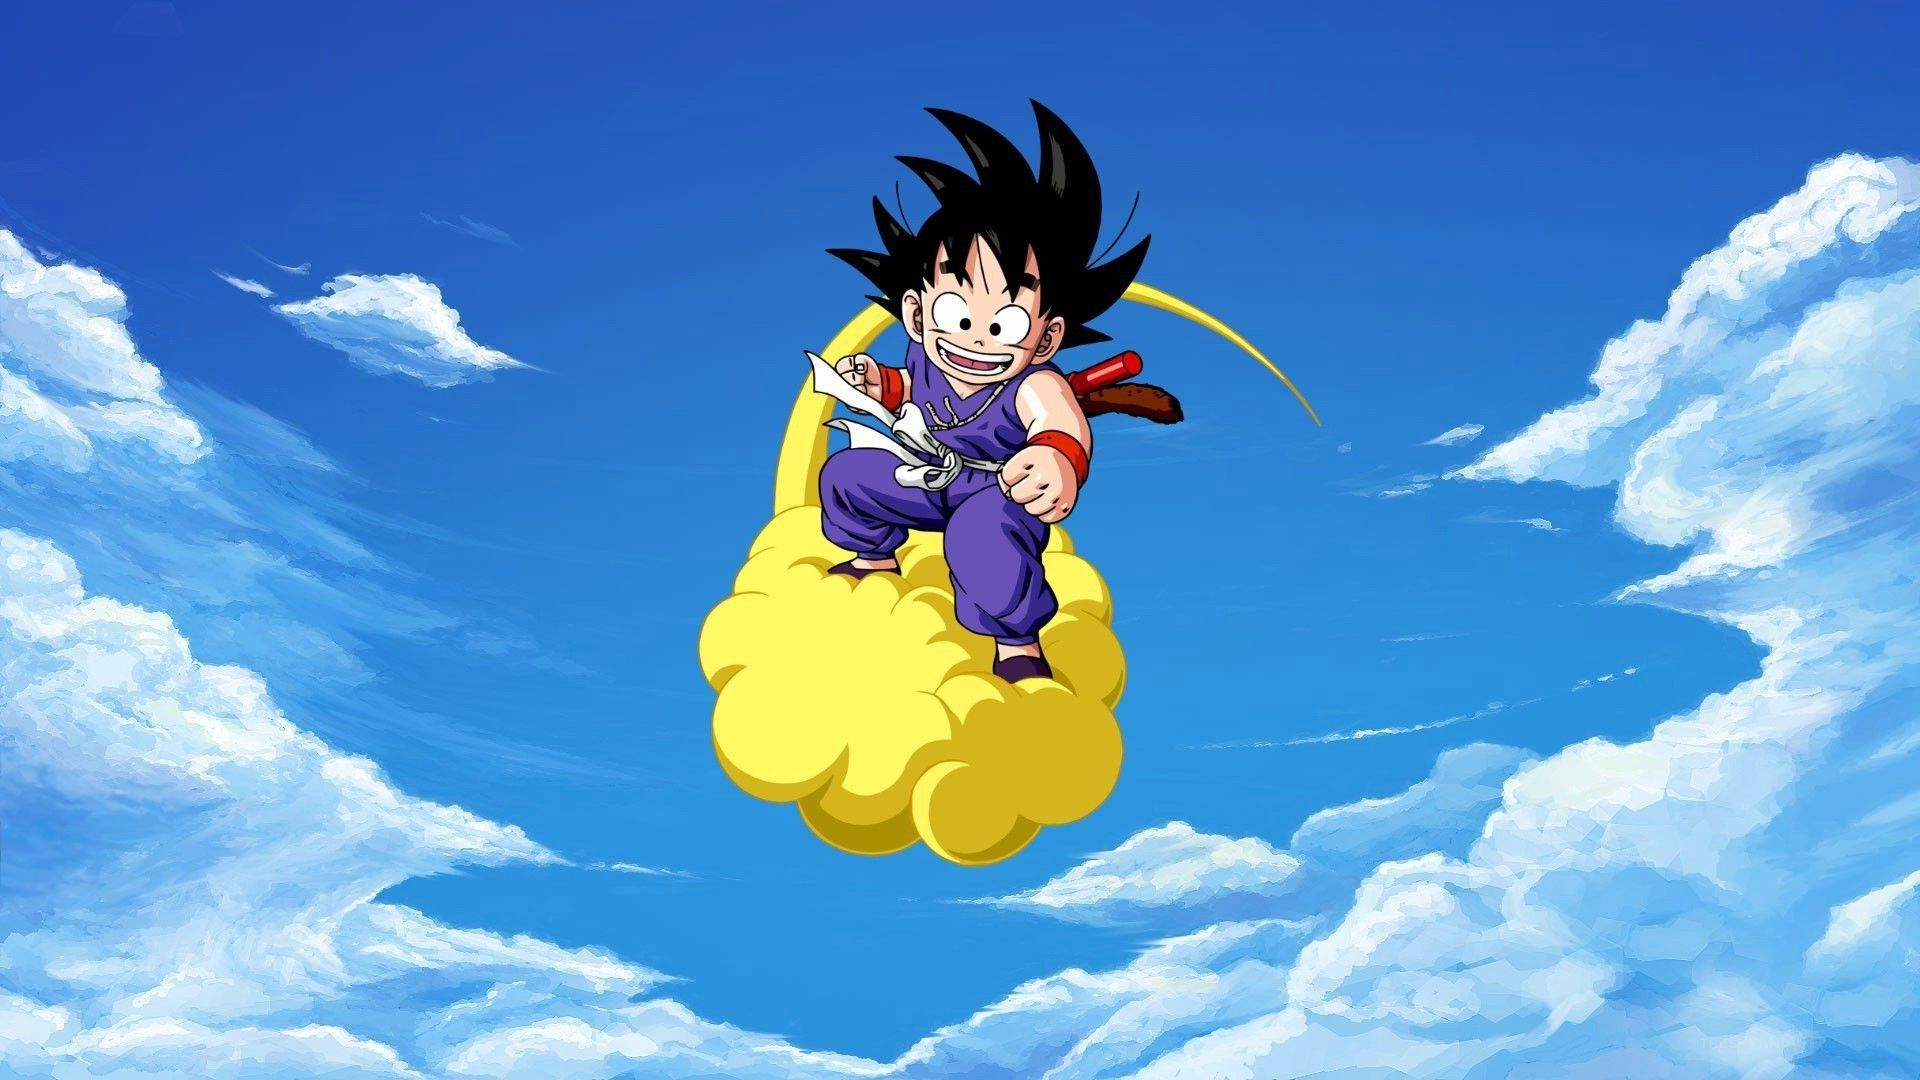 Wallpaper Hd Kid Goku 2021 Live Wallpaper Hd Goku Wallpaper Kid Goku Cute Wallpapers